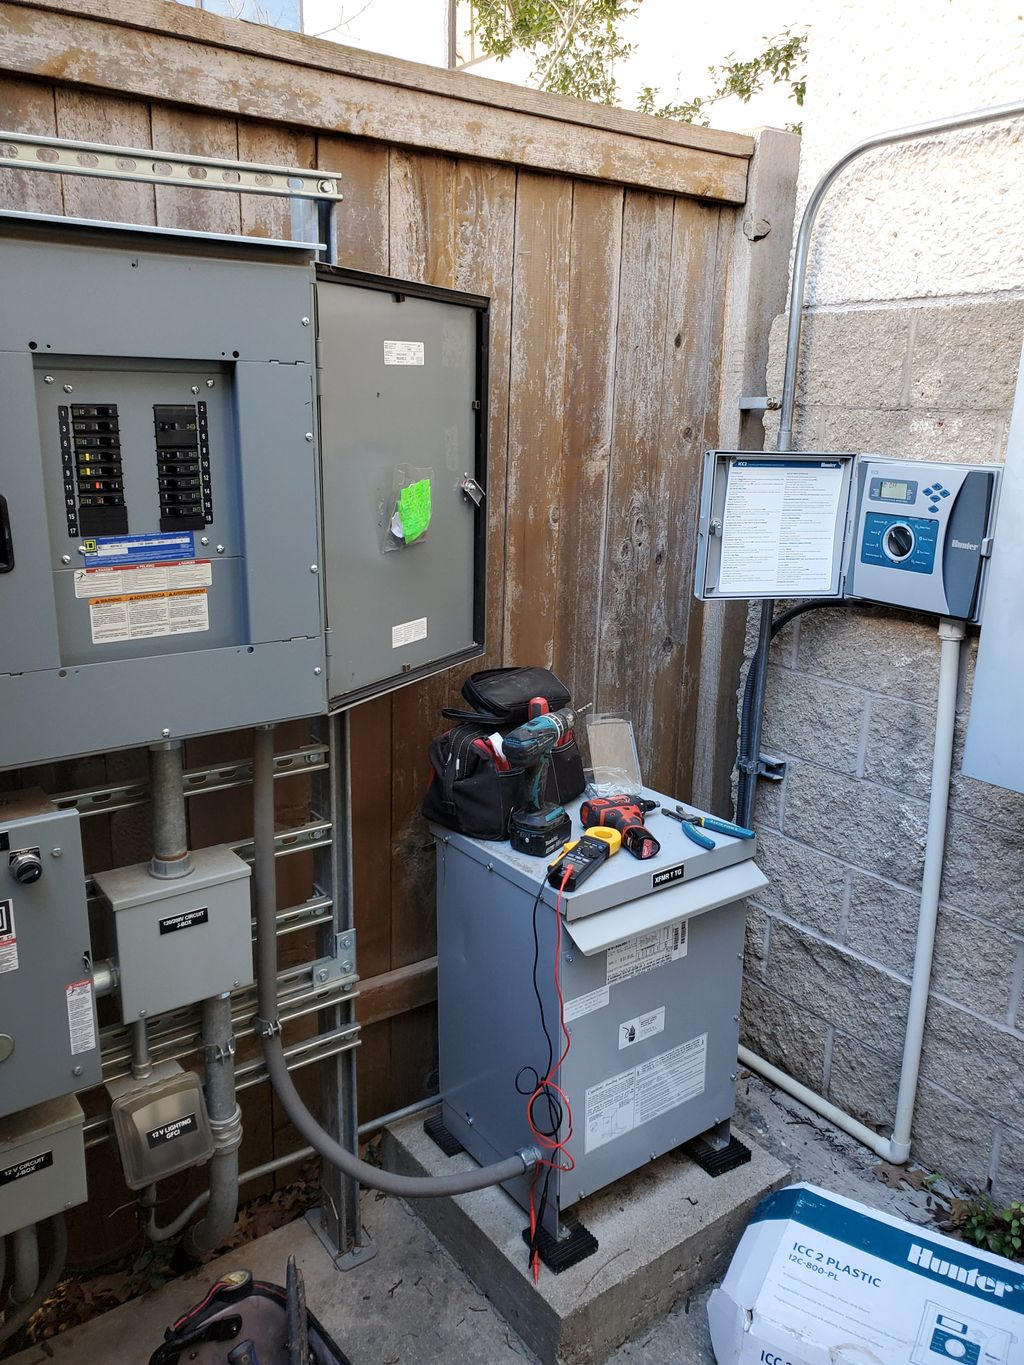 Replace irrigation controller